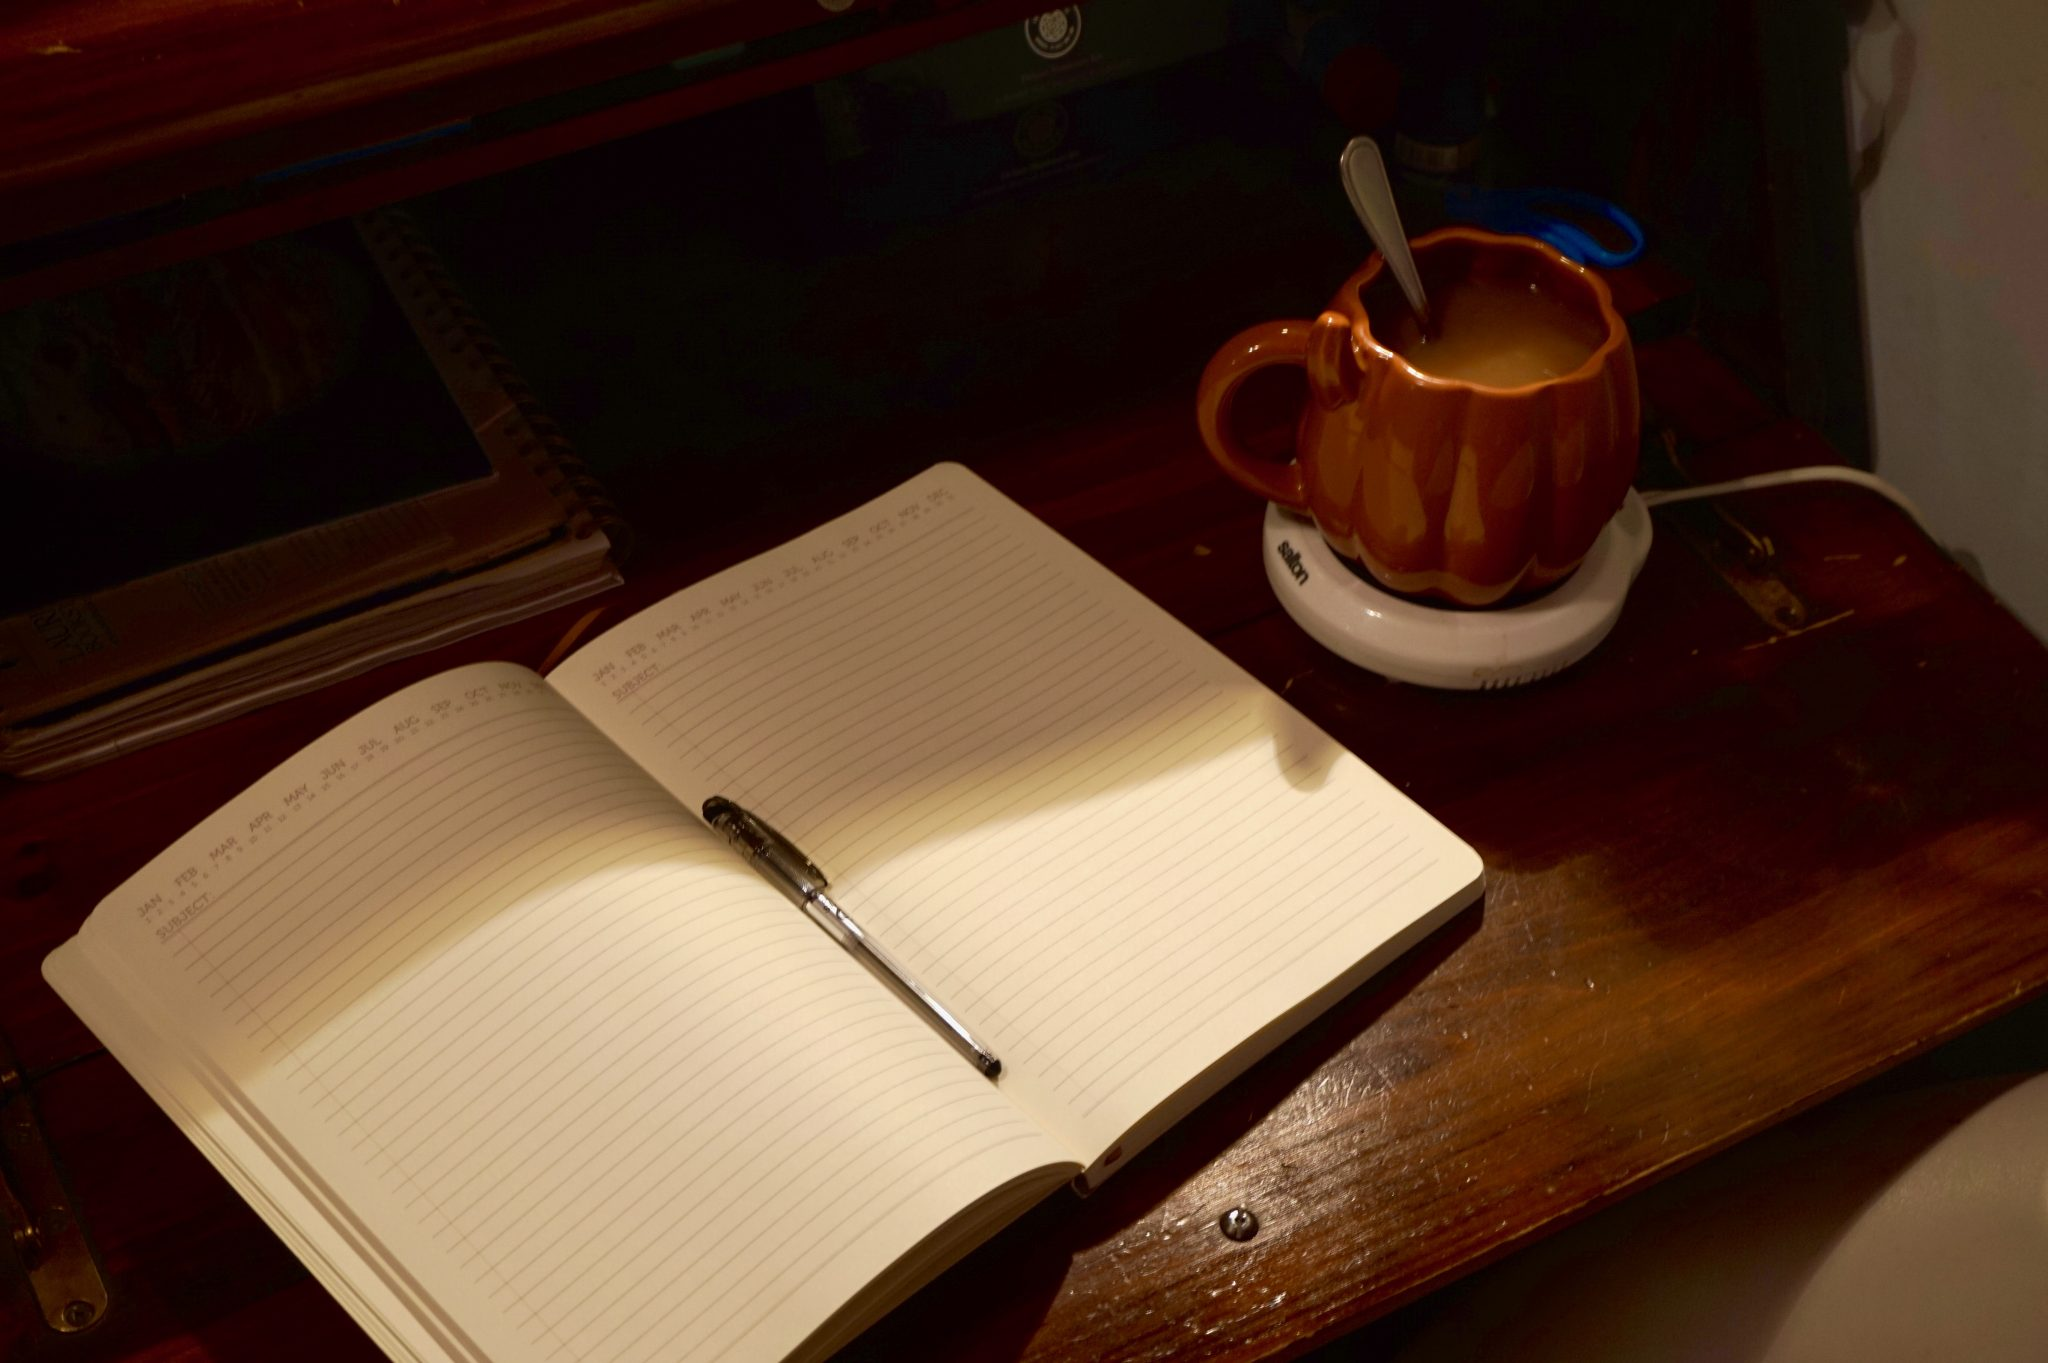 Notebook and pen on a table with a mug of tea.